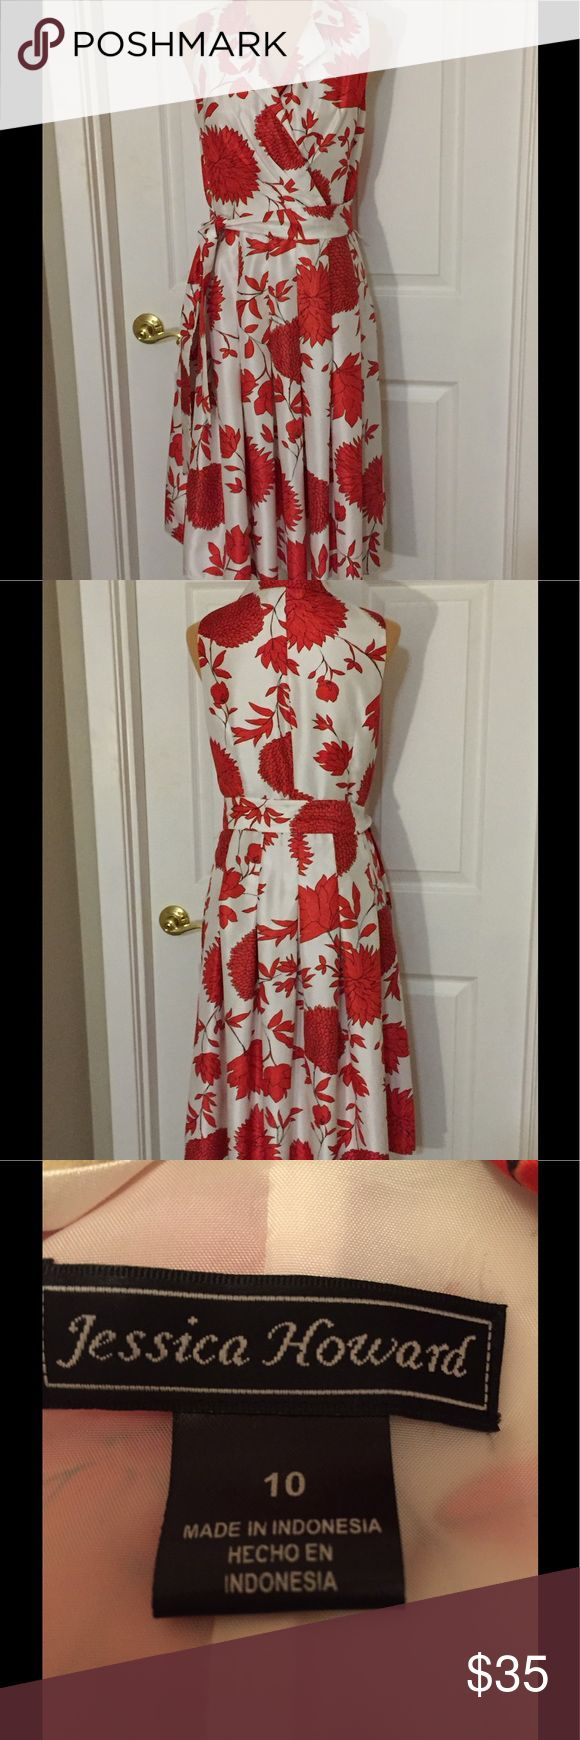 Jessica Howard A-Line Dress Jessica Howard A-Line Dress with beautiful coral floral design. Goes perfectly with coral Calvin Klein shoes I have listed!  Excellent used condition. Jessica Howard Dresses